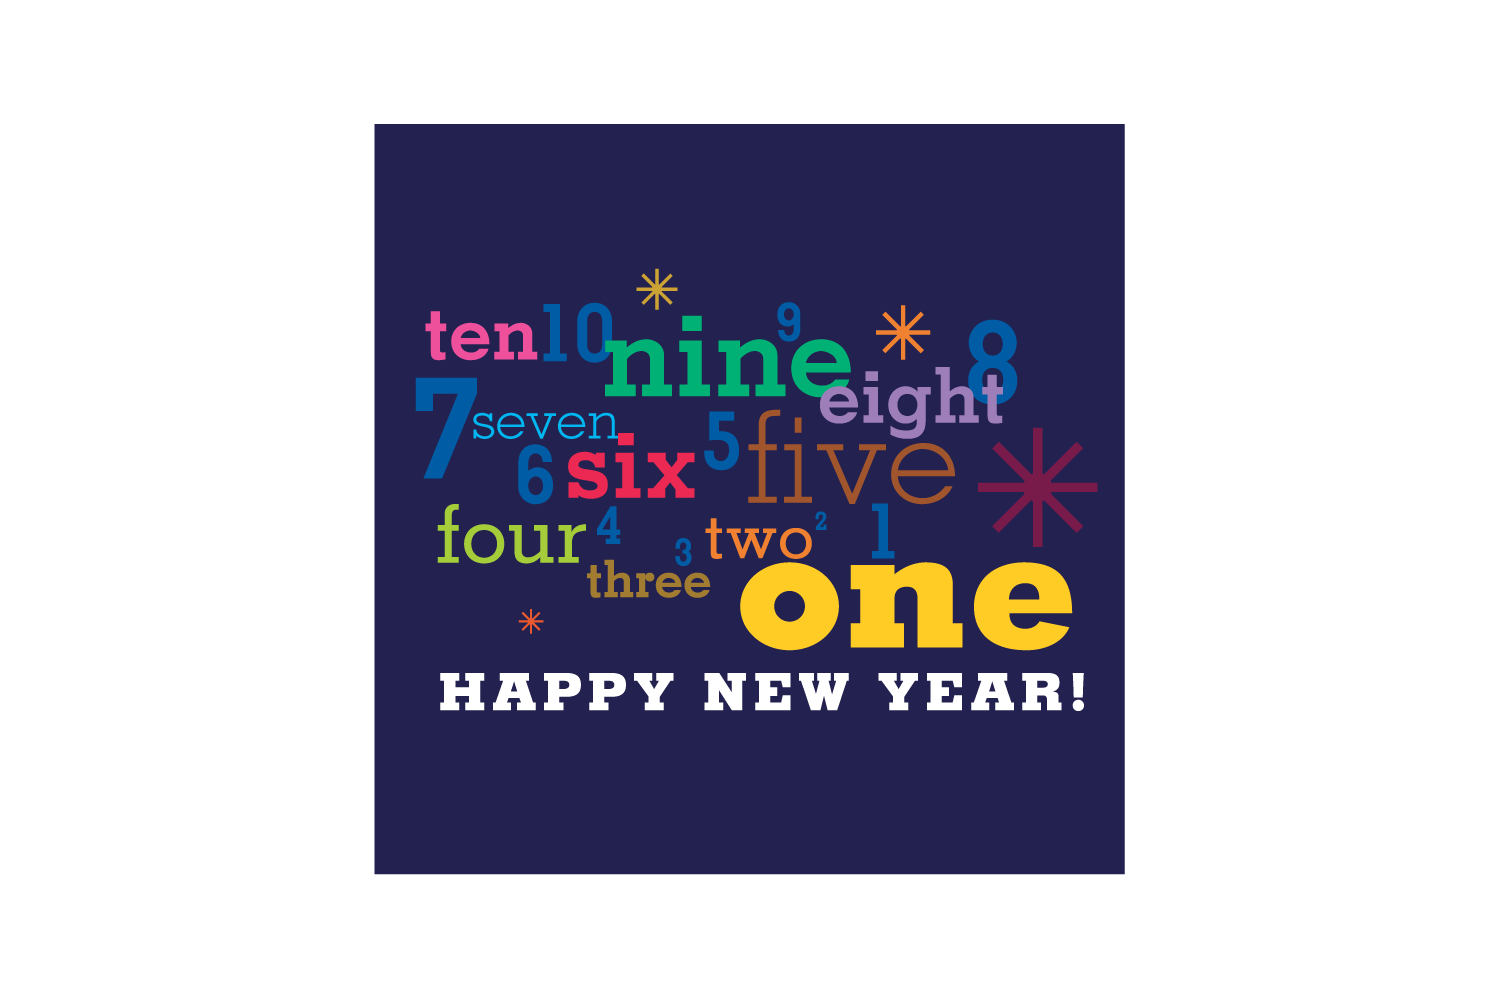 evite-new-year-countdown.png